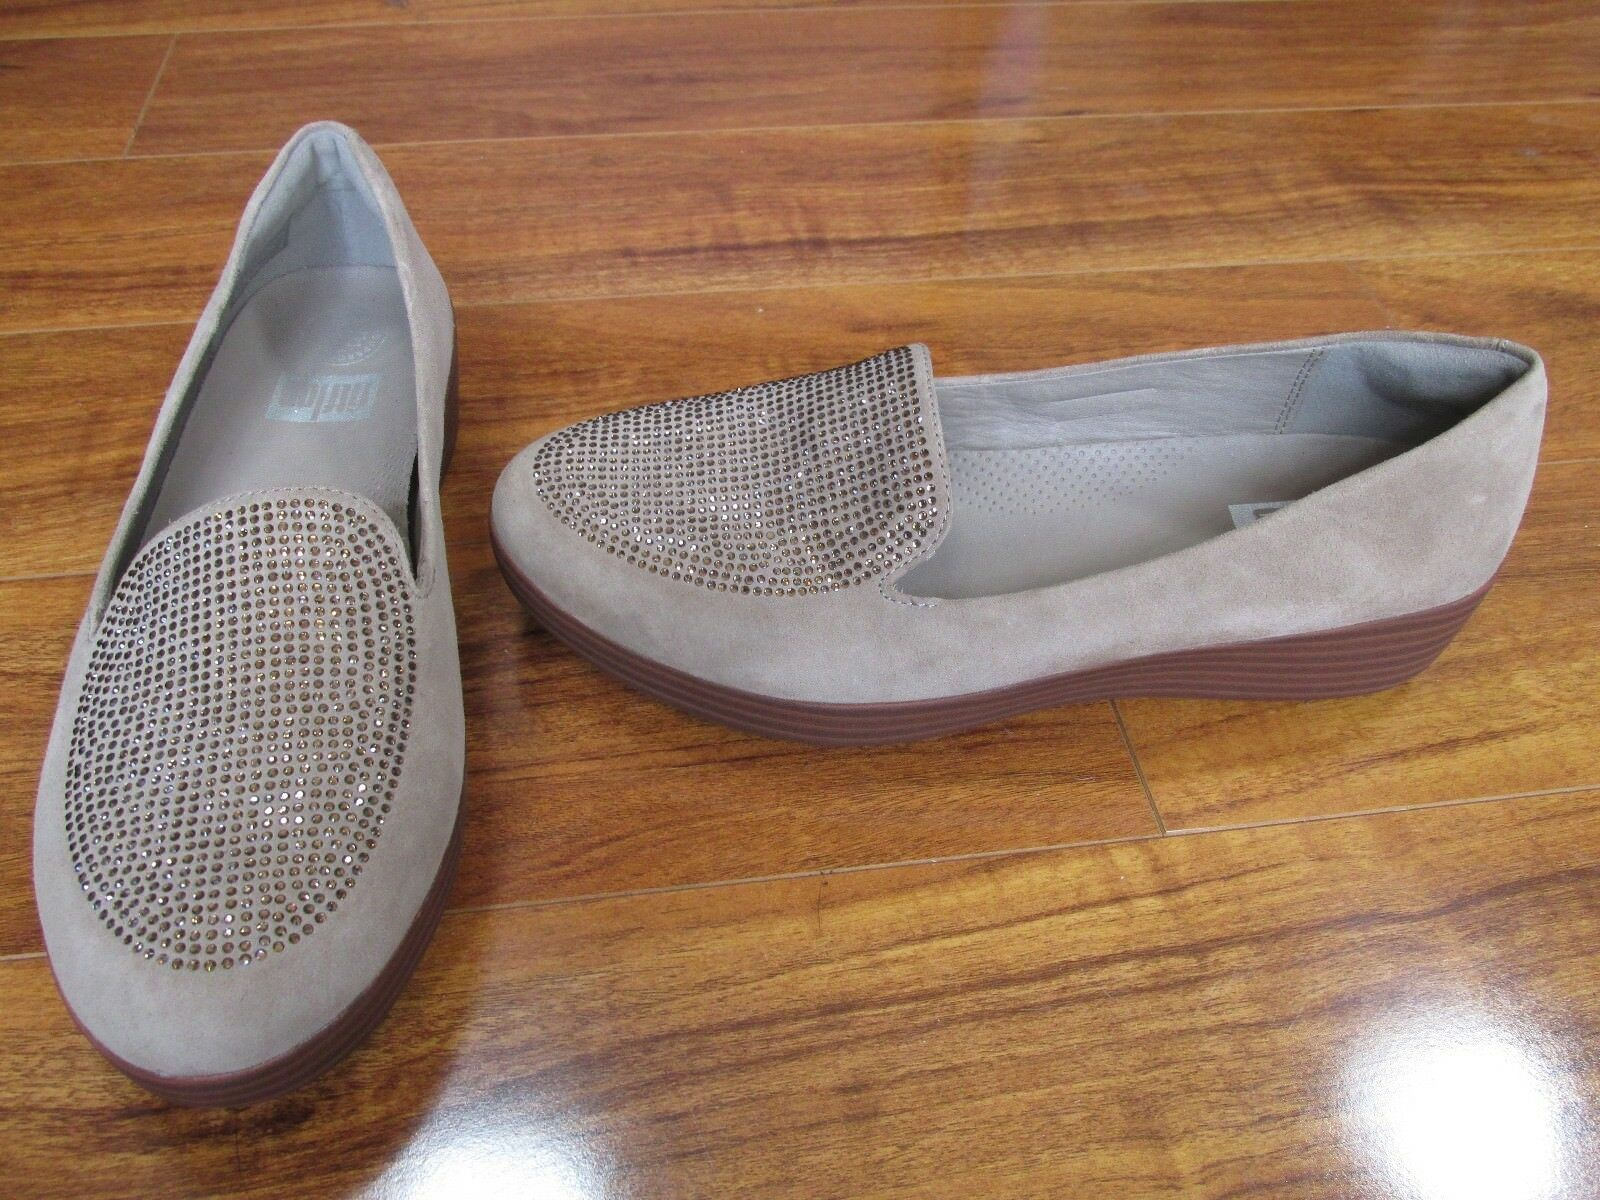 NEW FitFlop Sparkly Sneakerloafer 11 Slip-On Schuhes Damenschuhe SZ 11 Sneakerloafer Desert Stone b3a42a